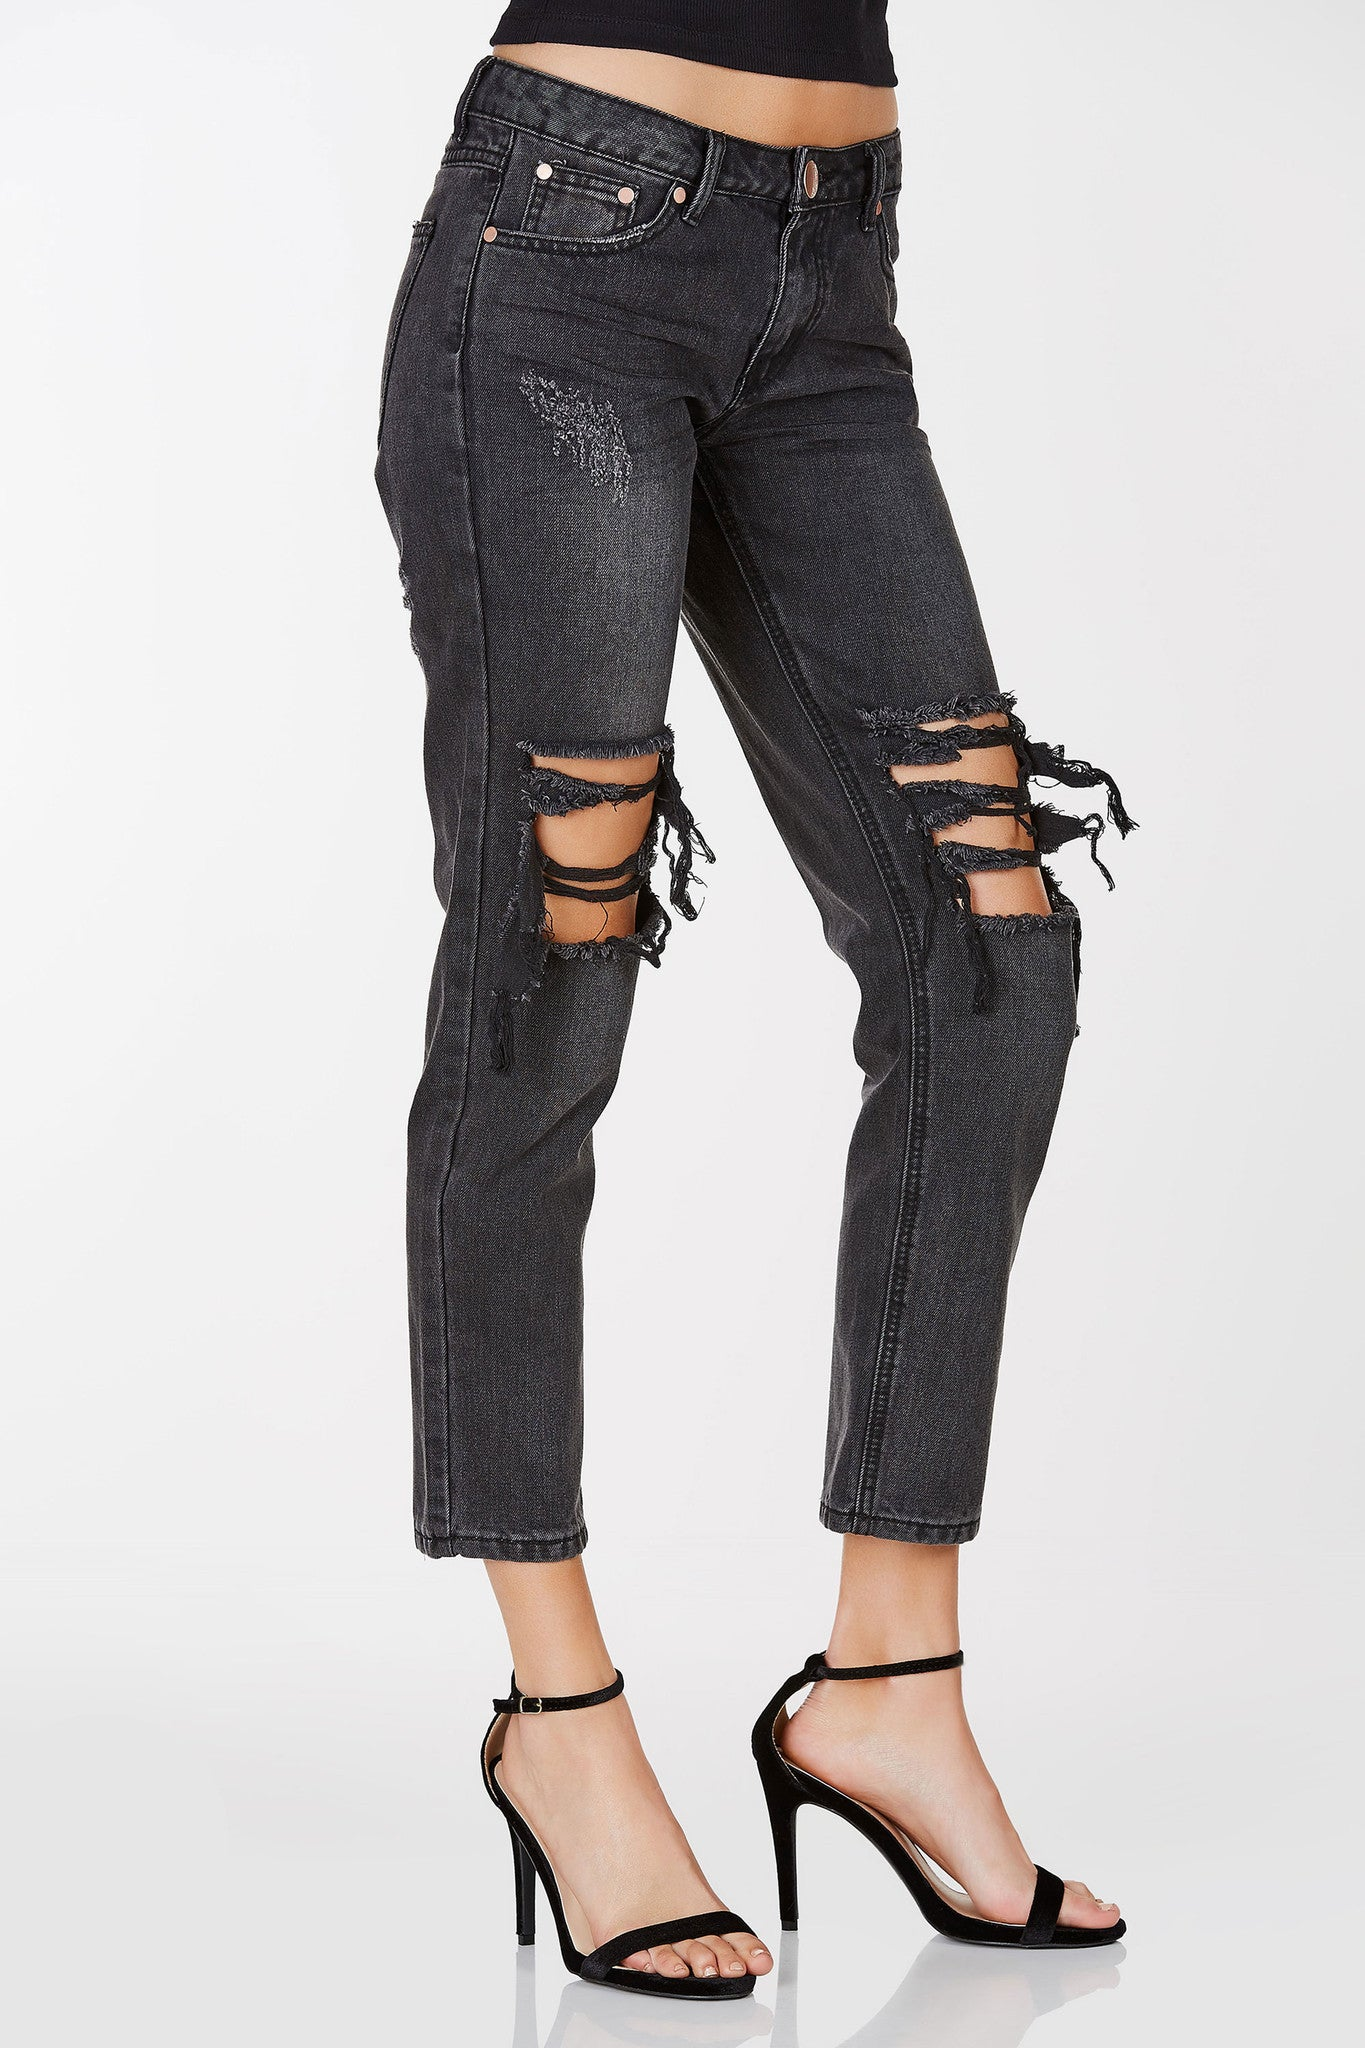 Faded dark wash boyfriend jeans with heavy distressing at knees. Straight hem with zipper and button closure.